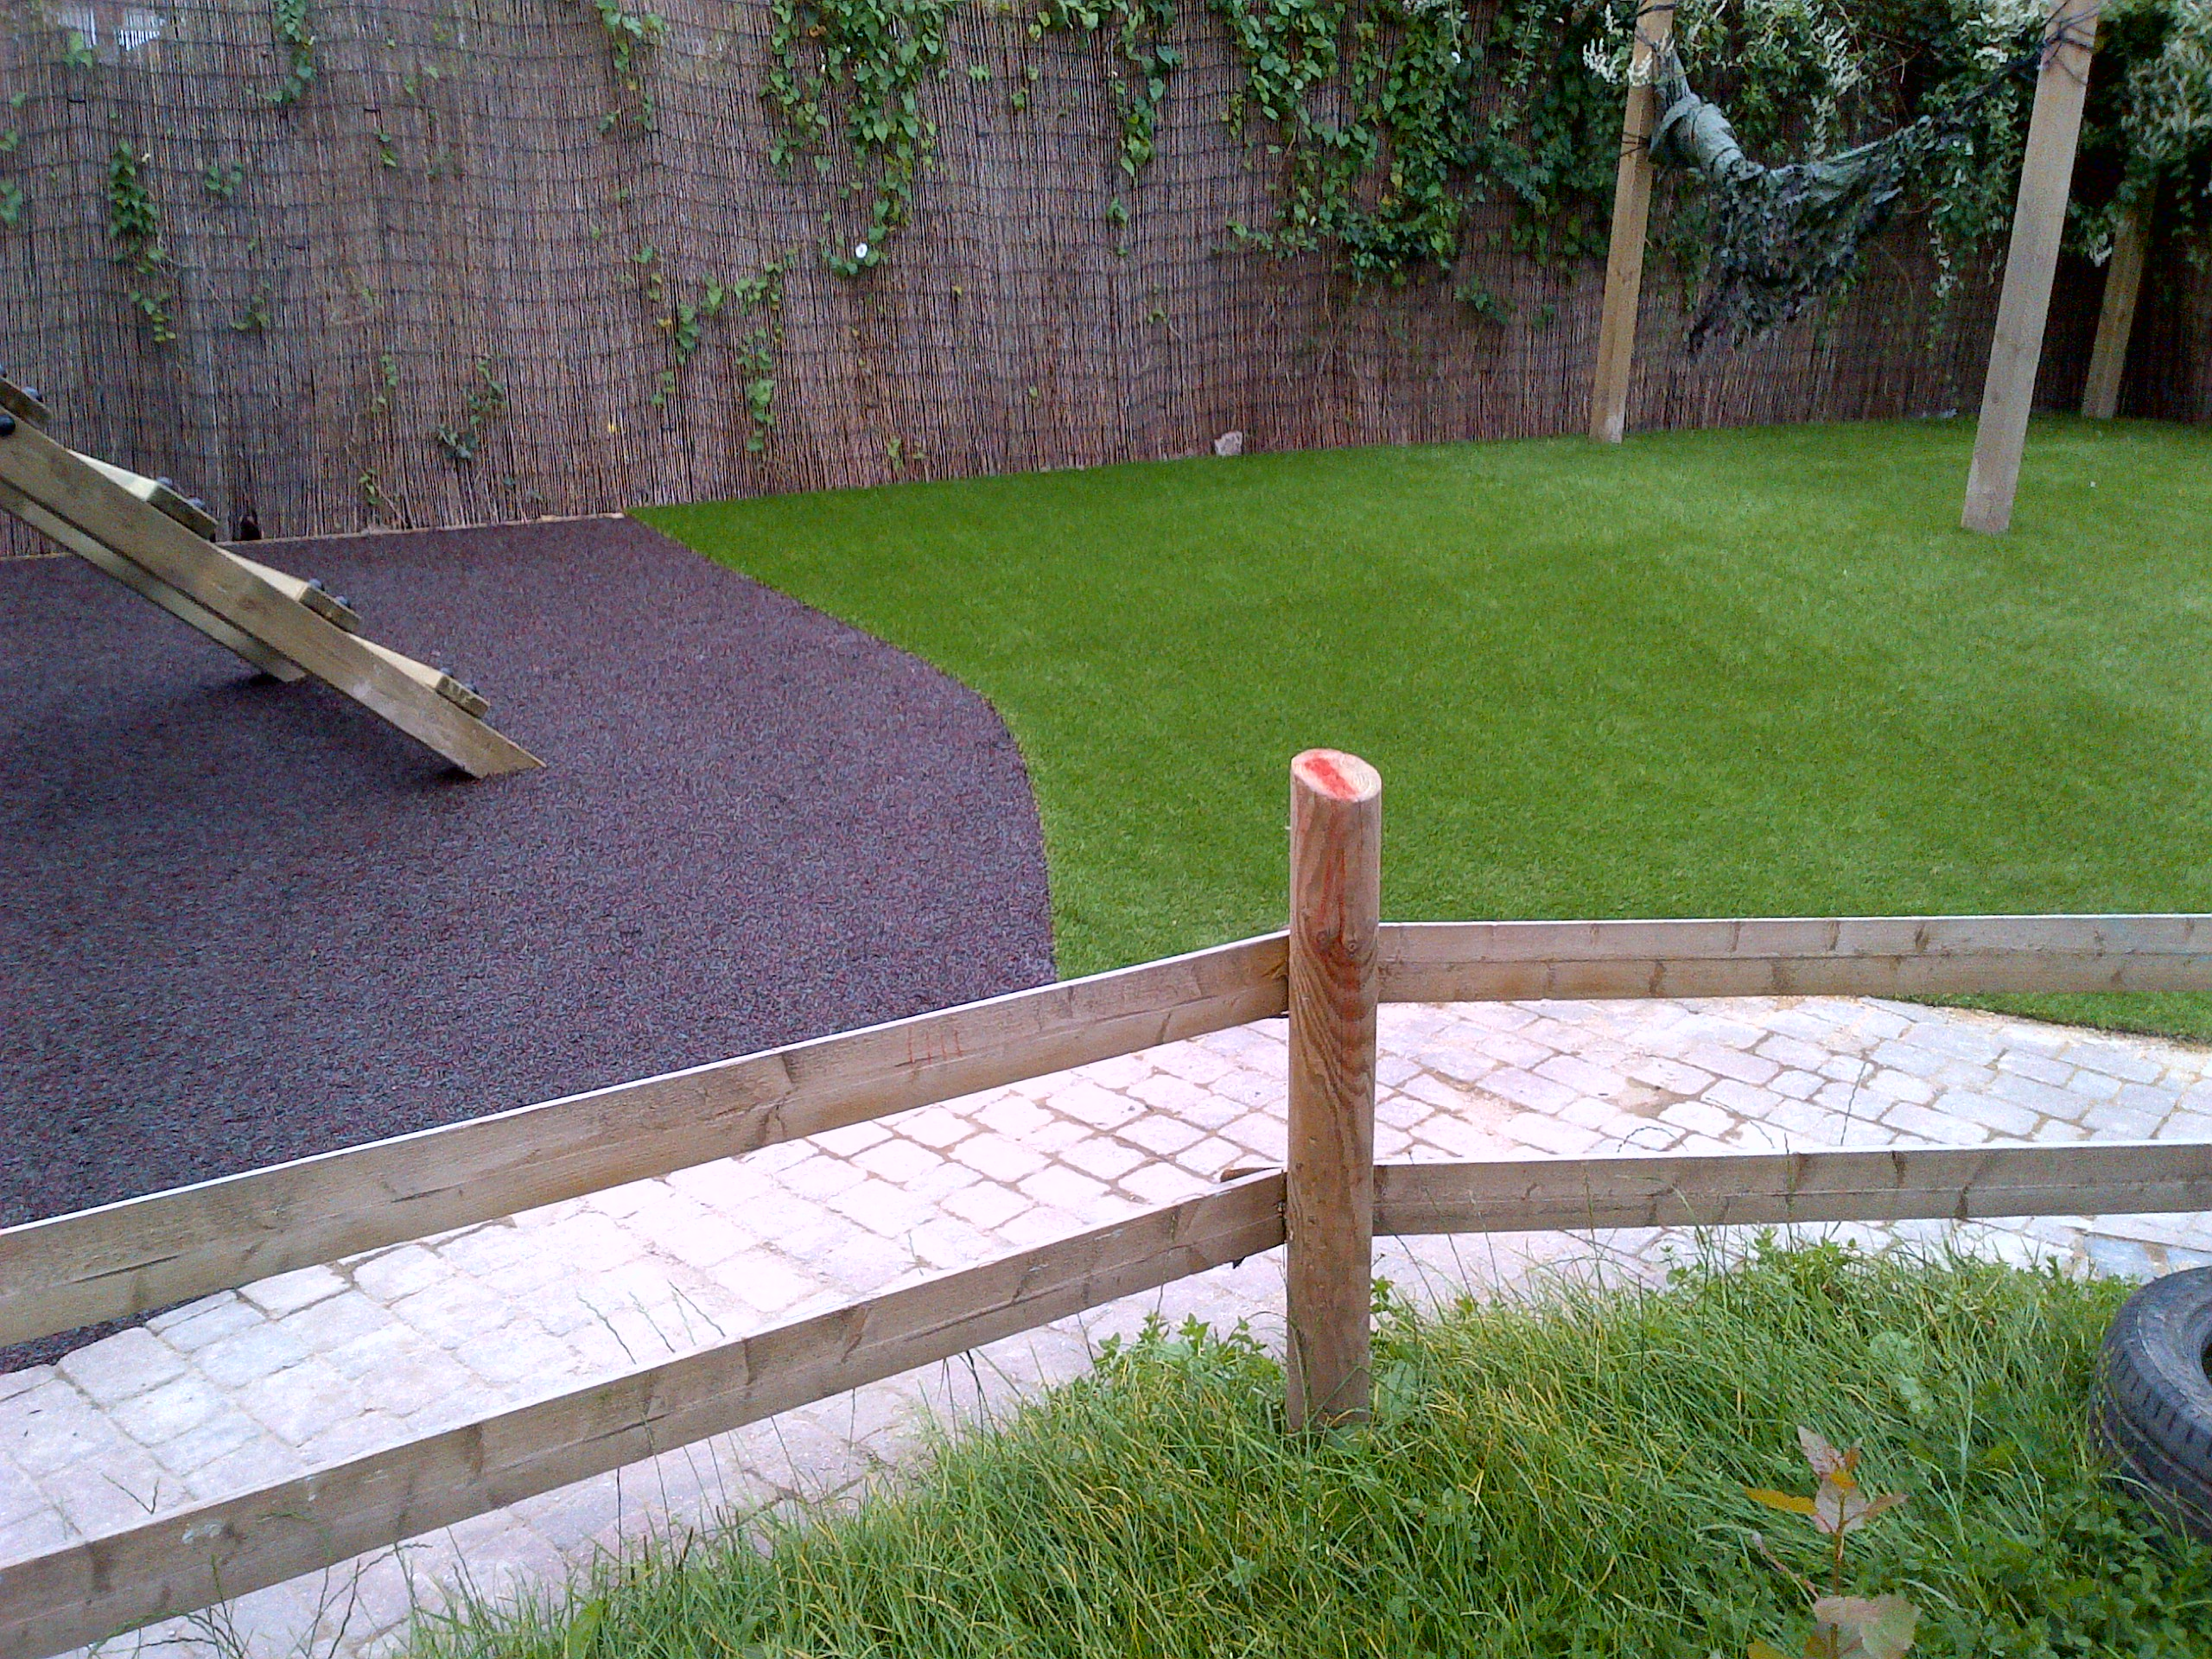 112m² bonded rubber mulch and 80m² artificial grass in Weston Super Mare